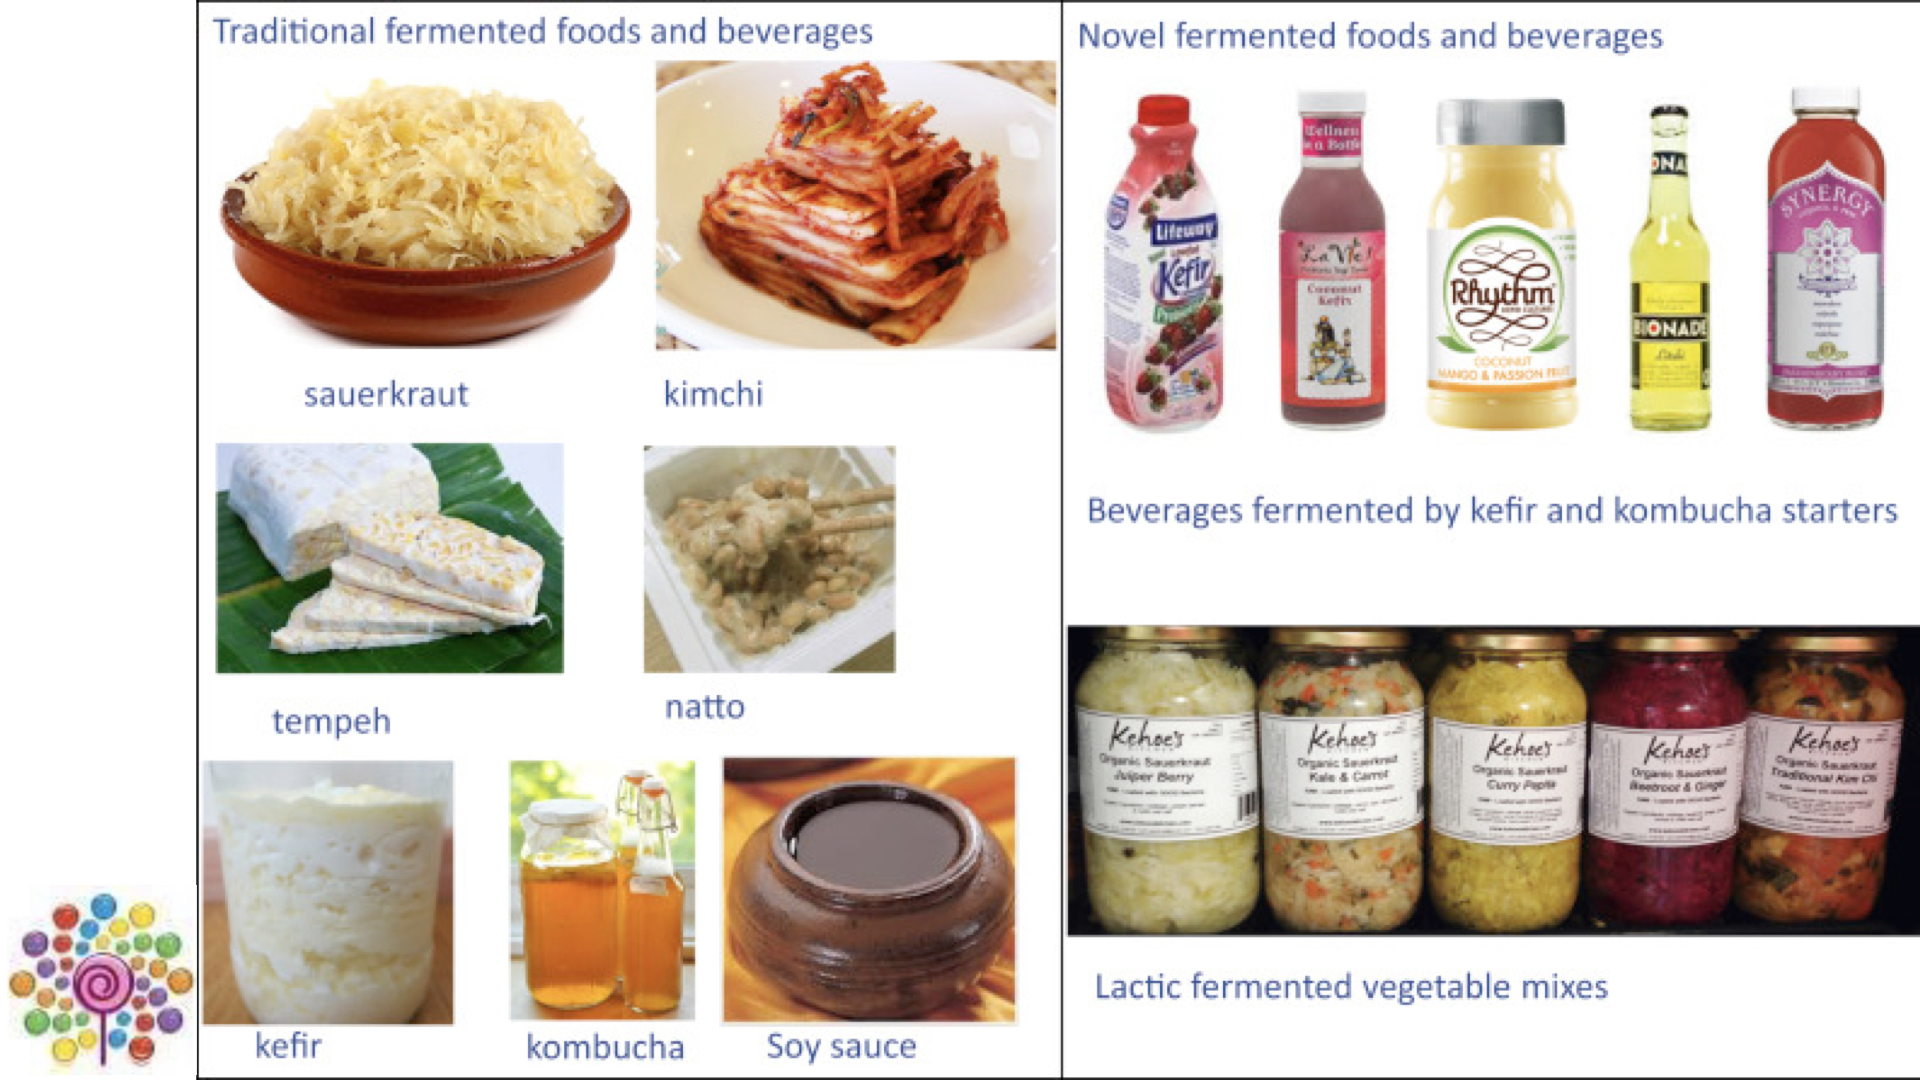 Examples of fermented foods and probiotic fermented foods.